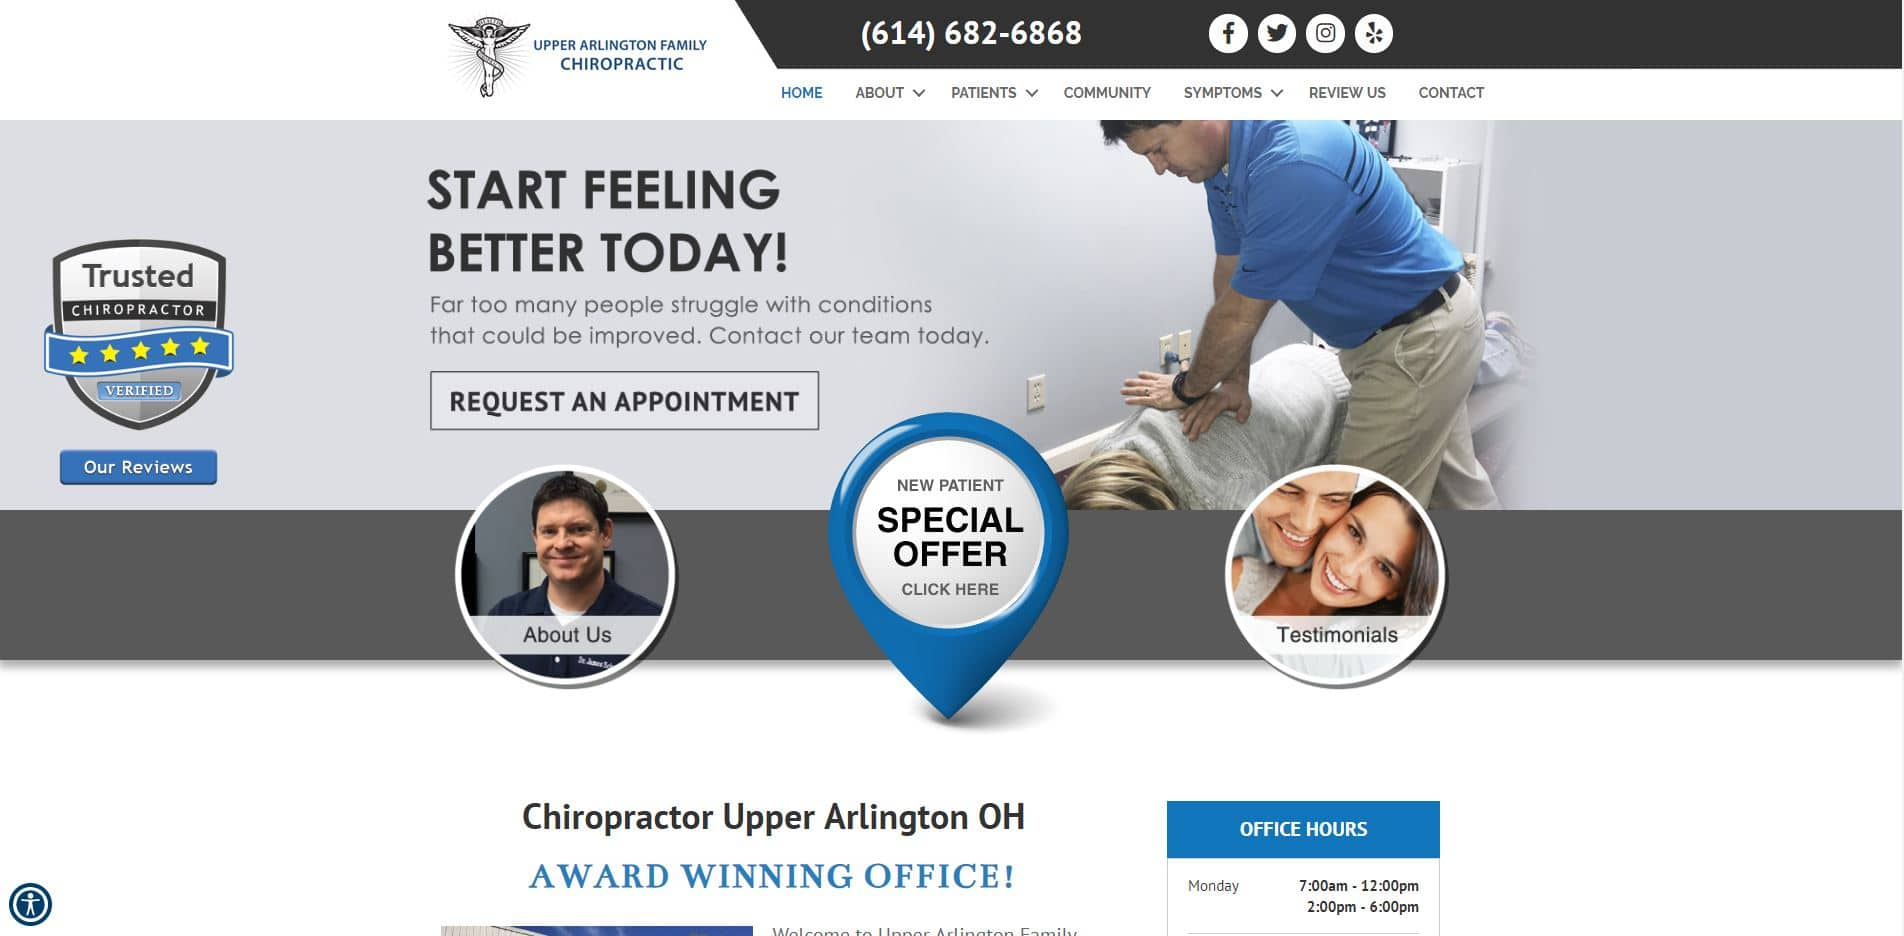 Chiropractor in Upper Arlington